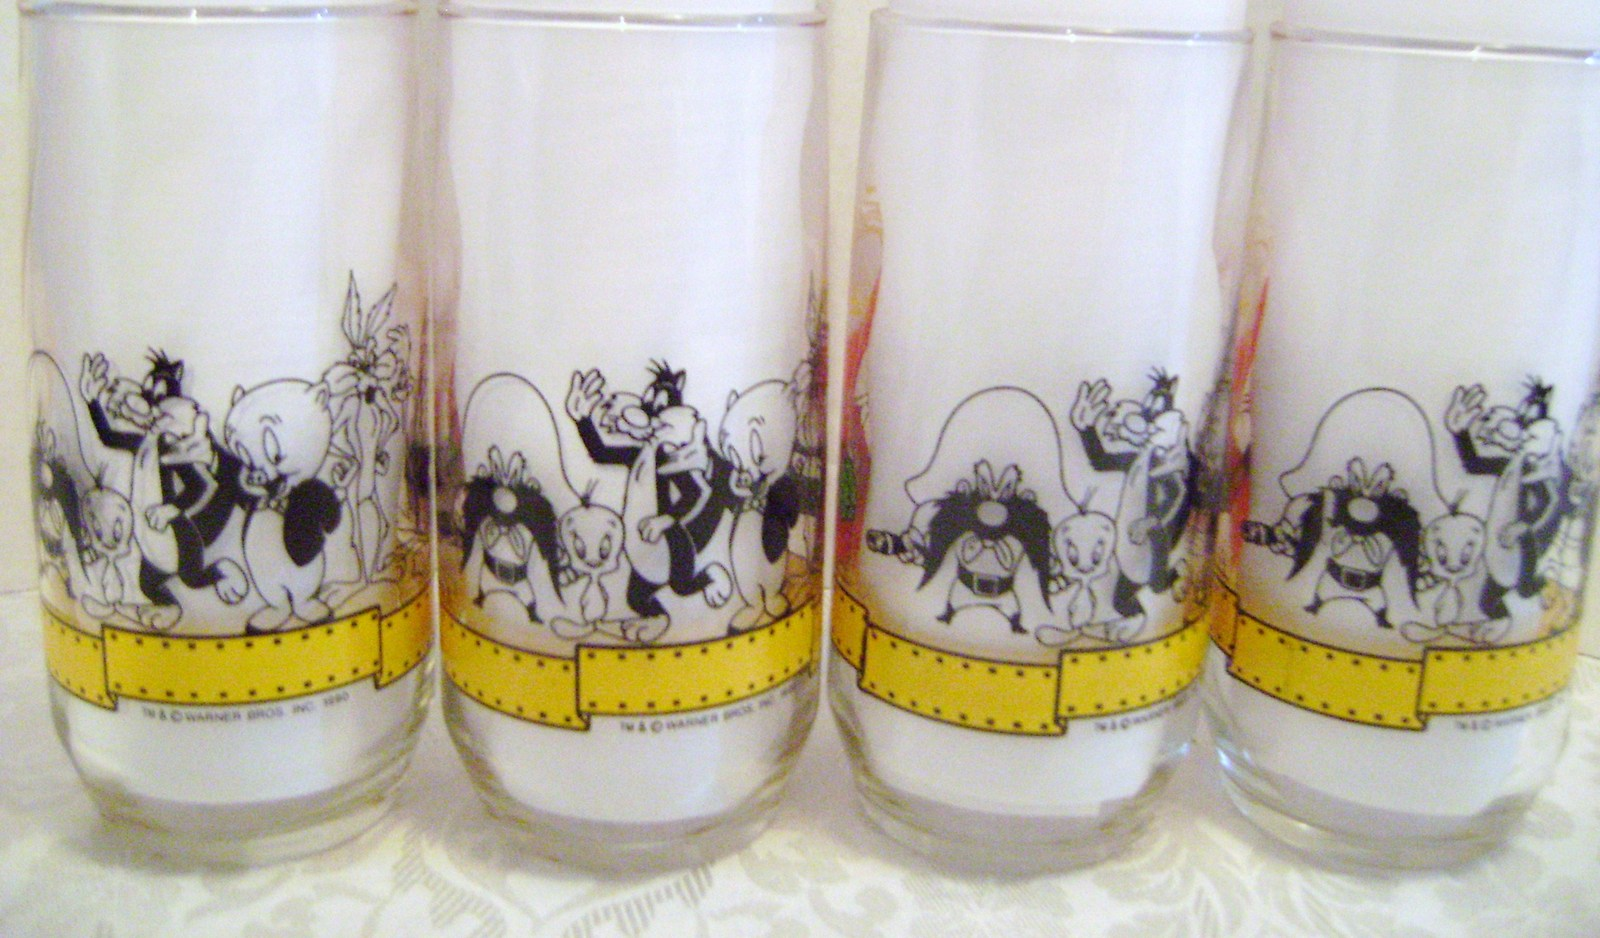 Bugs Bunny 50th Anniversary Glasses